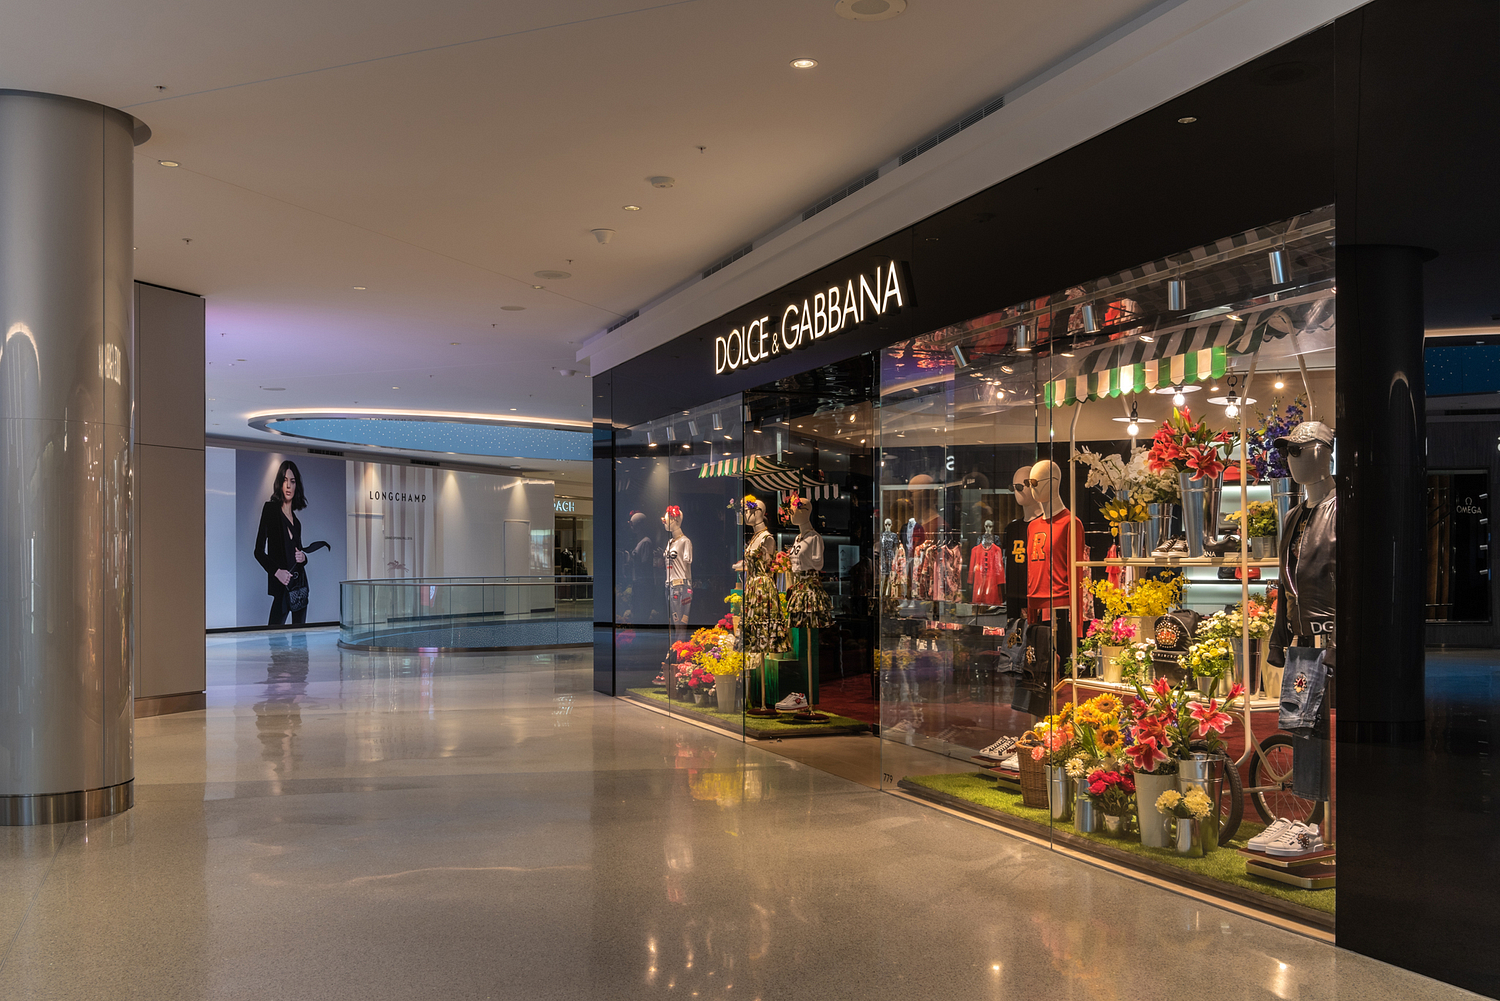 Dolce & Gabbana store front, Beverly Center, Los Angeles